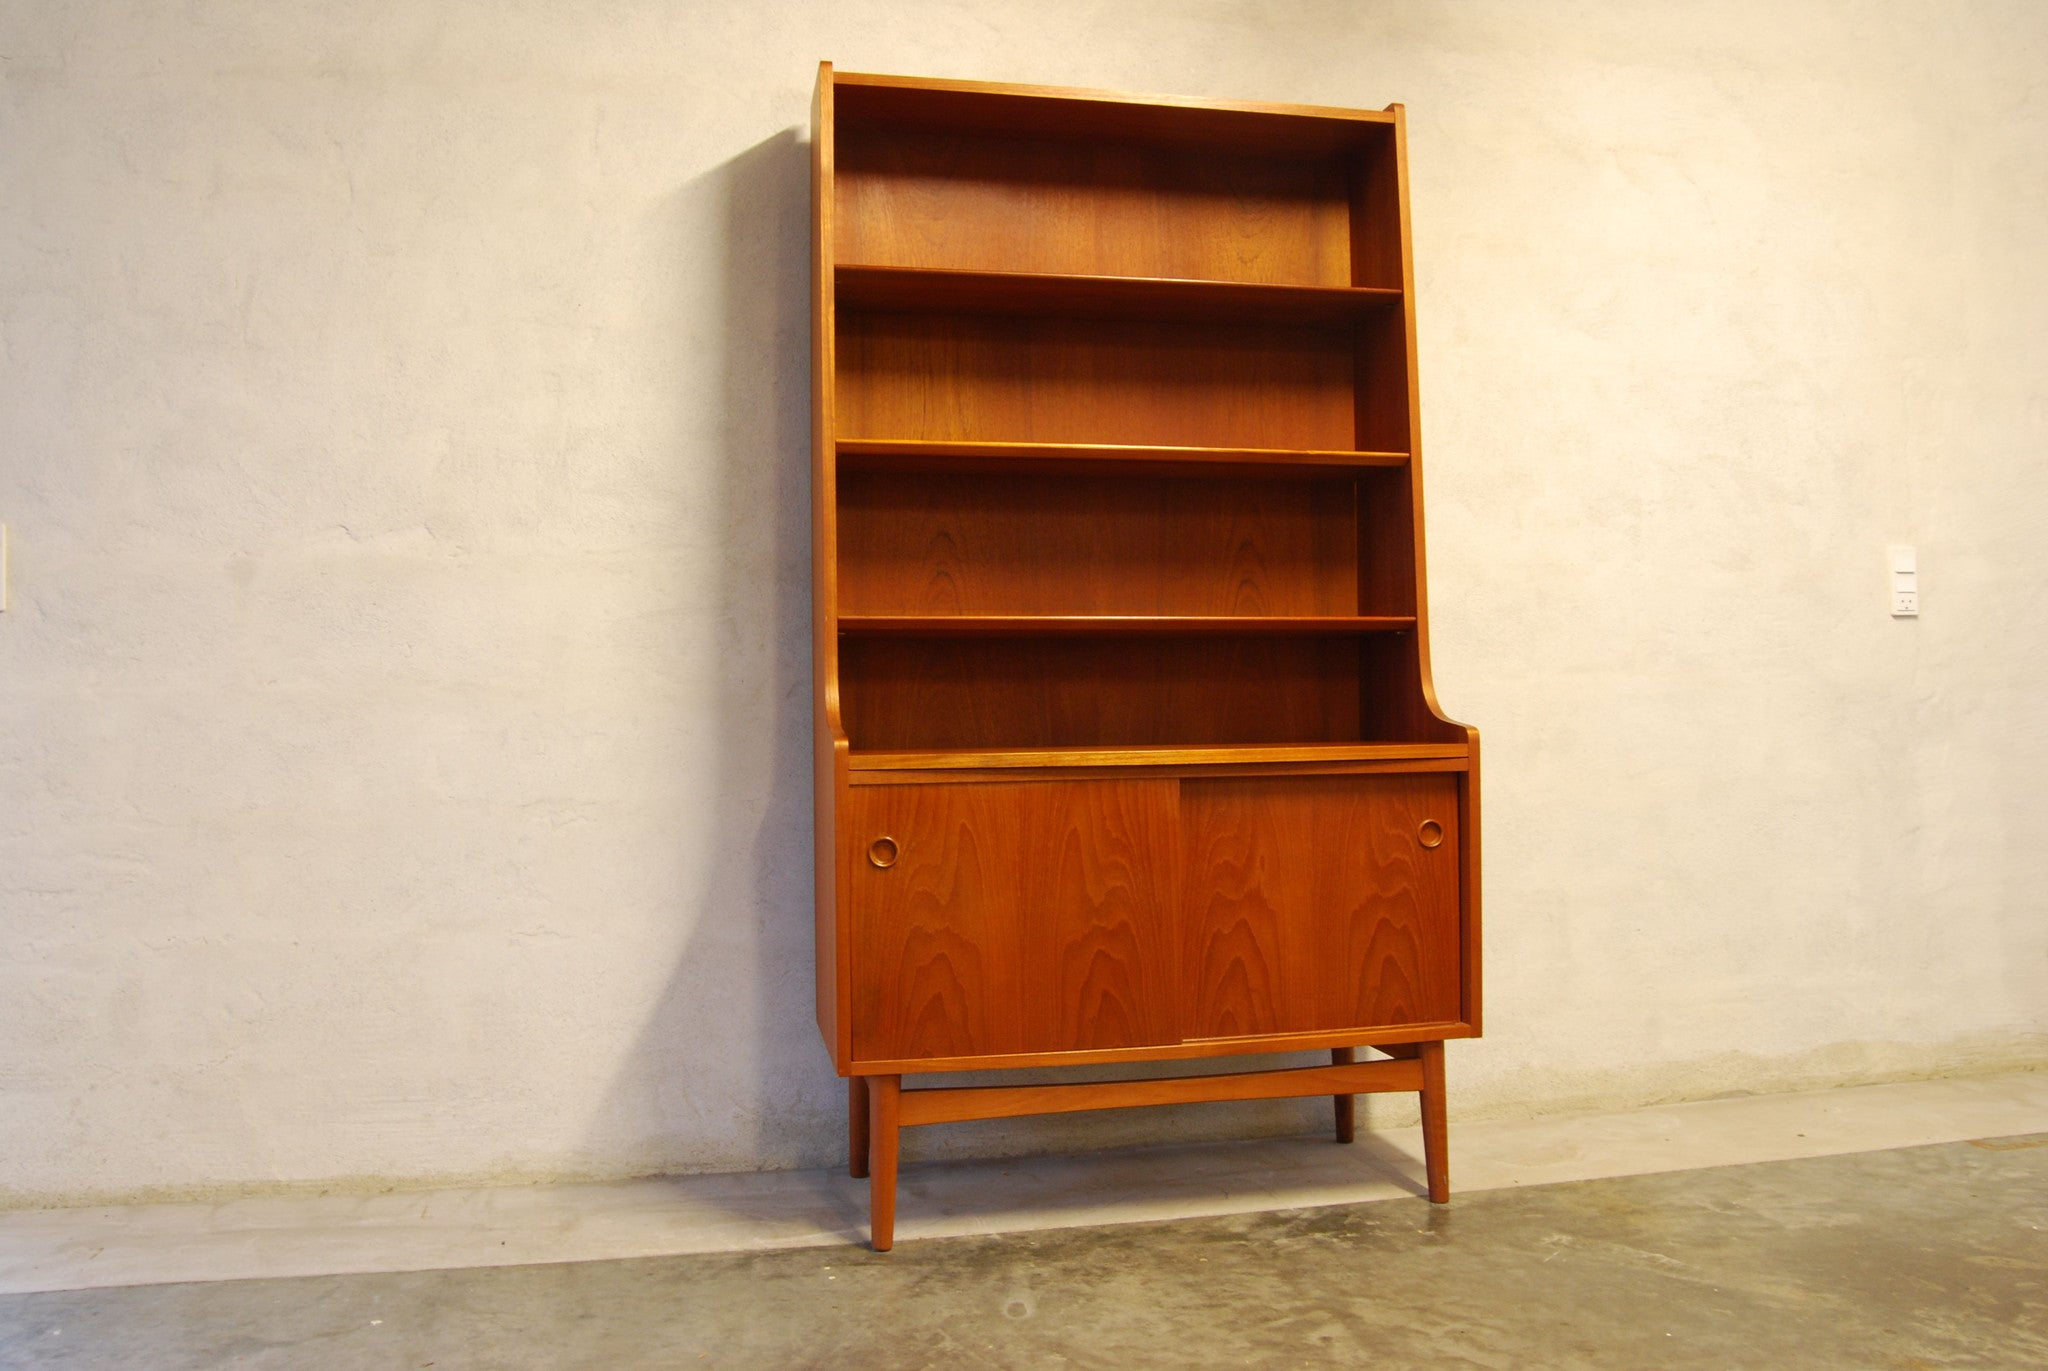 Bookshelf / storage unit